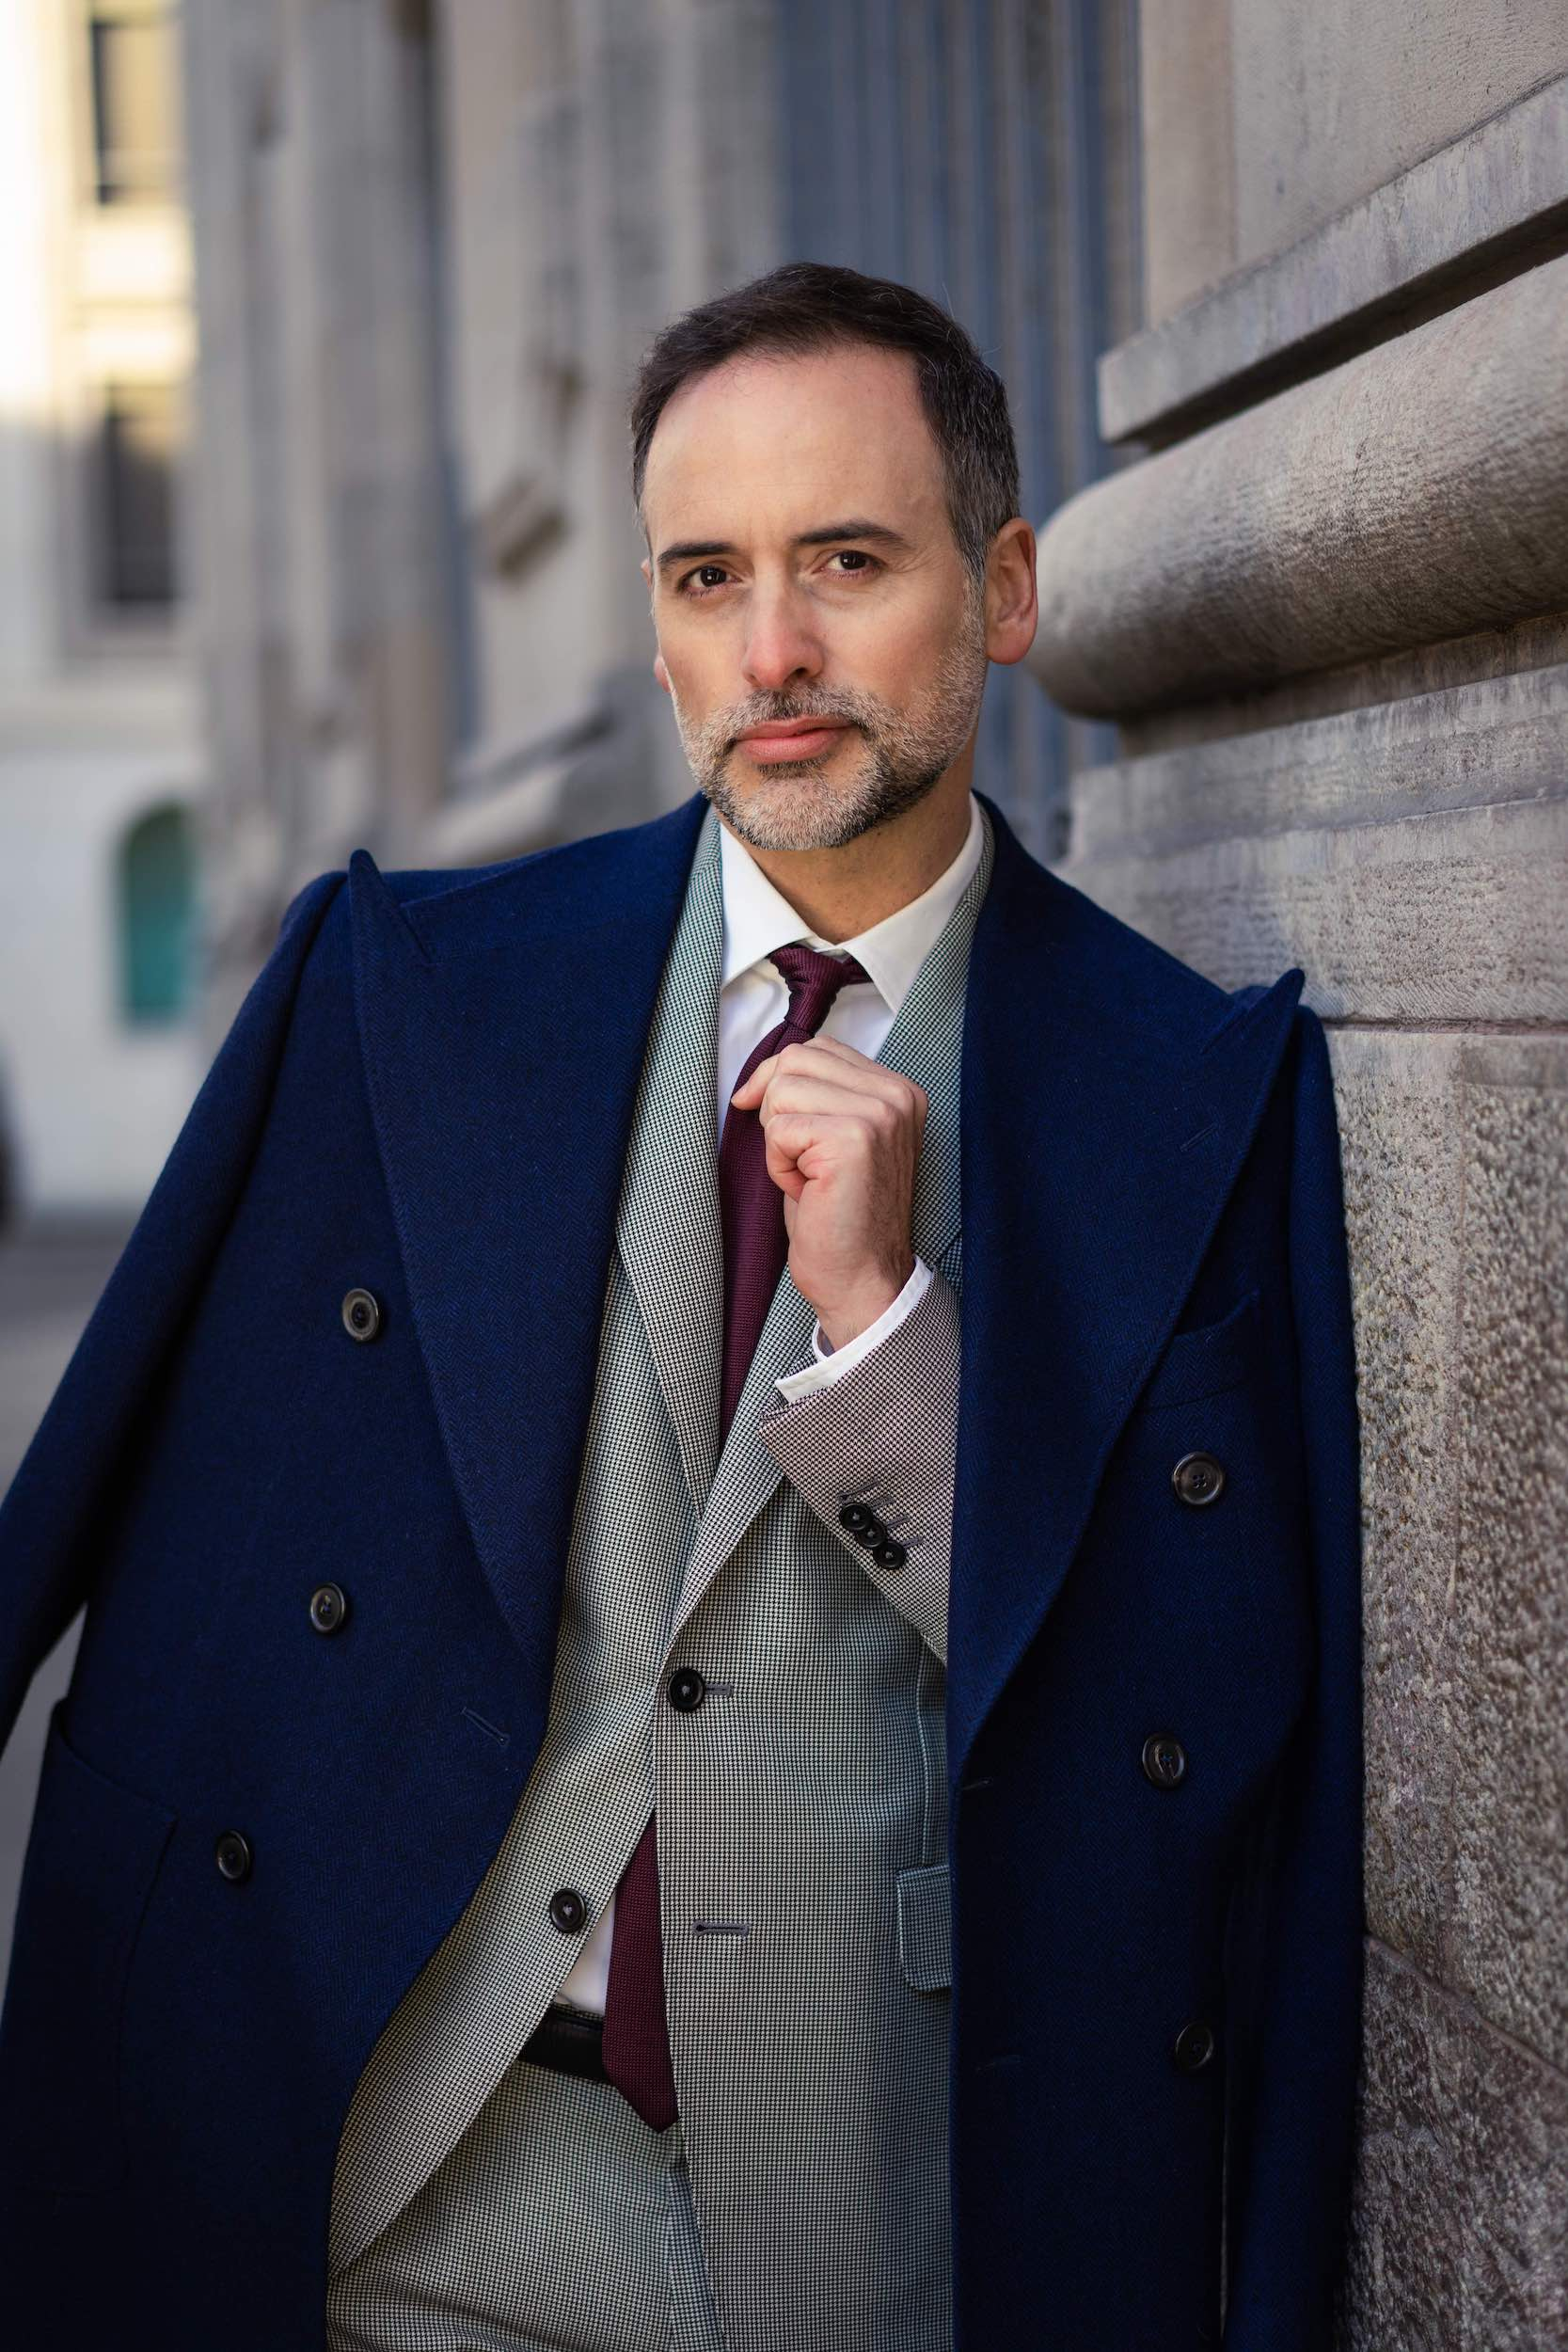 Detail of Dalbiondo's custom made overcoat and suit